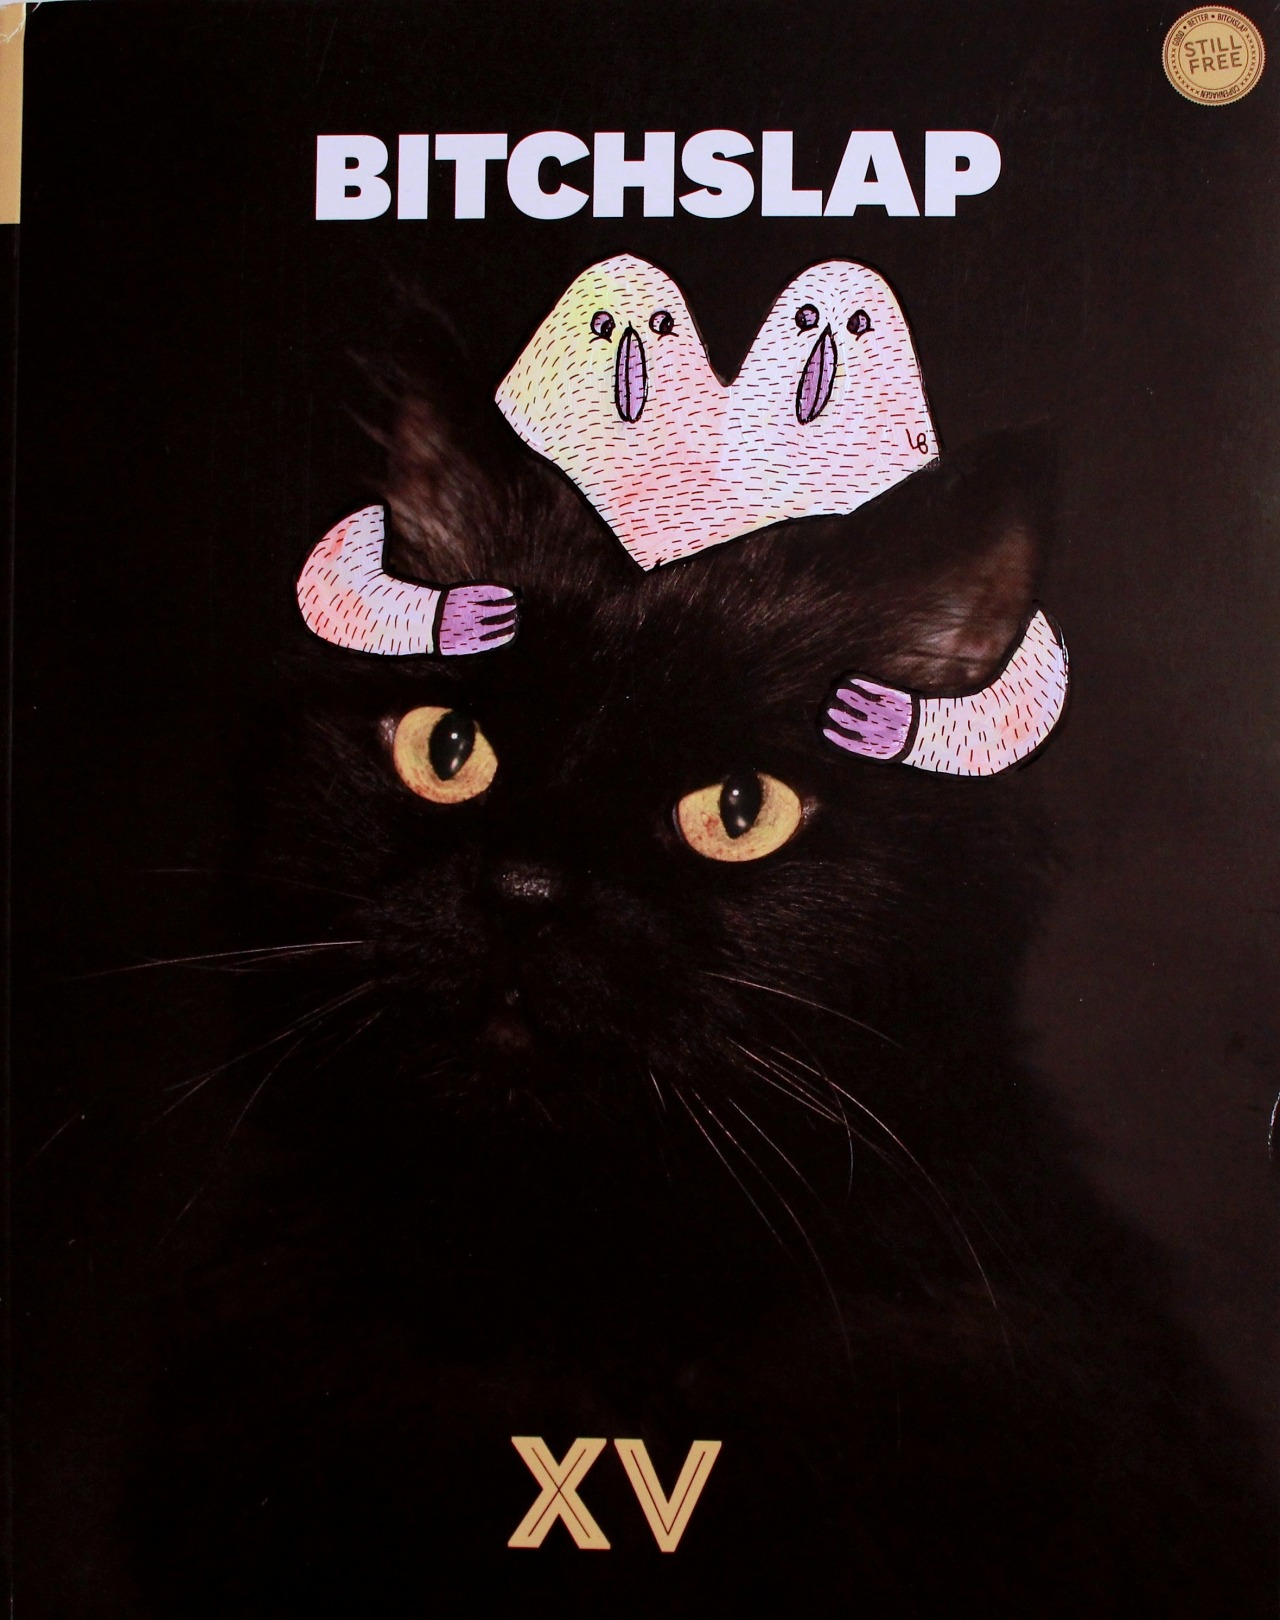 lucasbeaufort:  Bitchslap X LB Recover N°141 Black cat / Twins birds